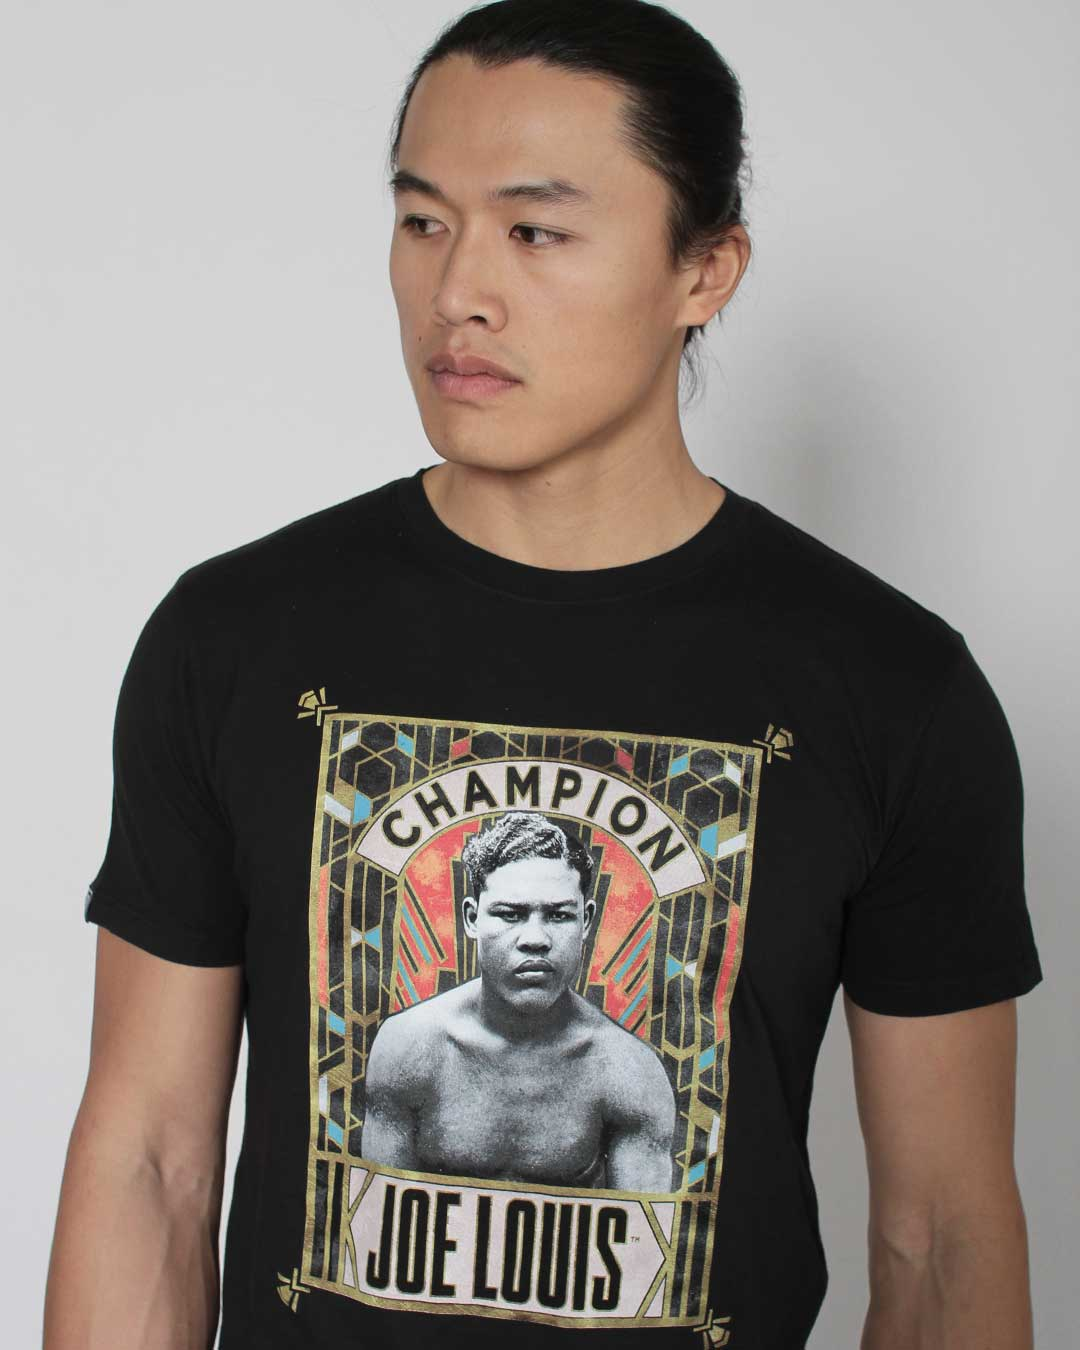 Joe Louis Champion Photo Tee - Roots of Inc dba Roots of Fight